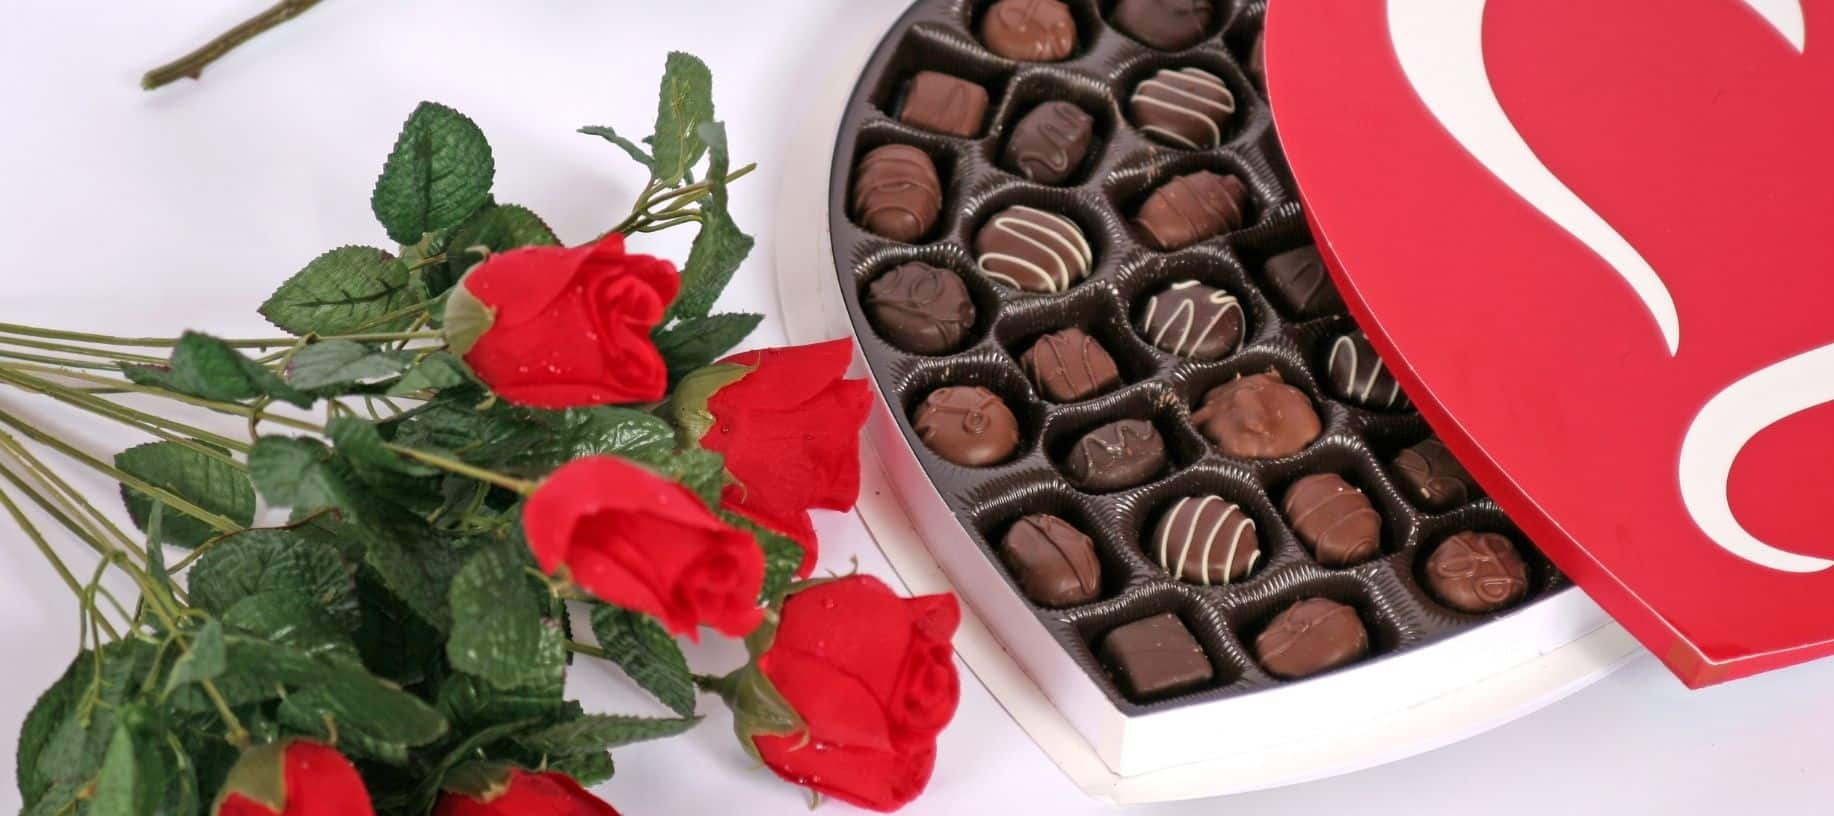 Heart shaped box with chocolates and red roses